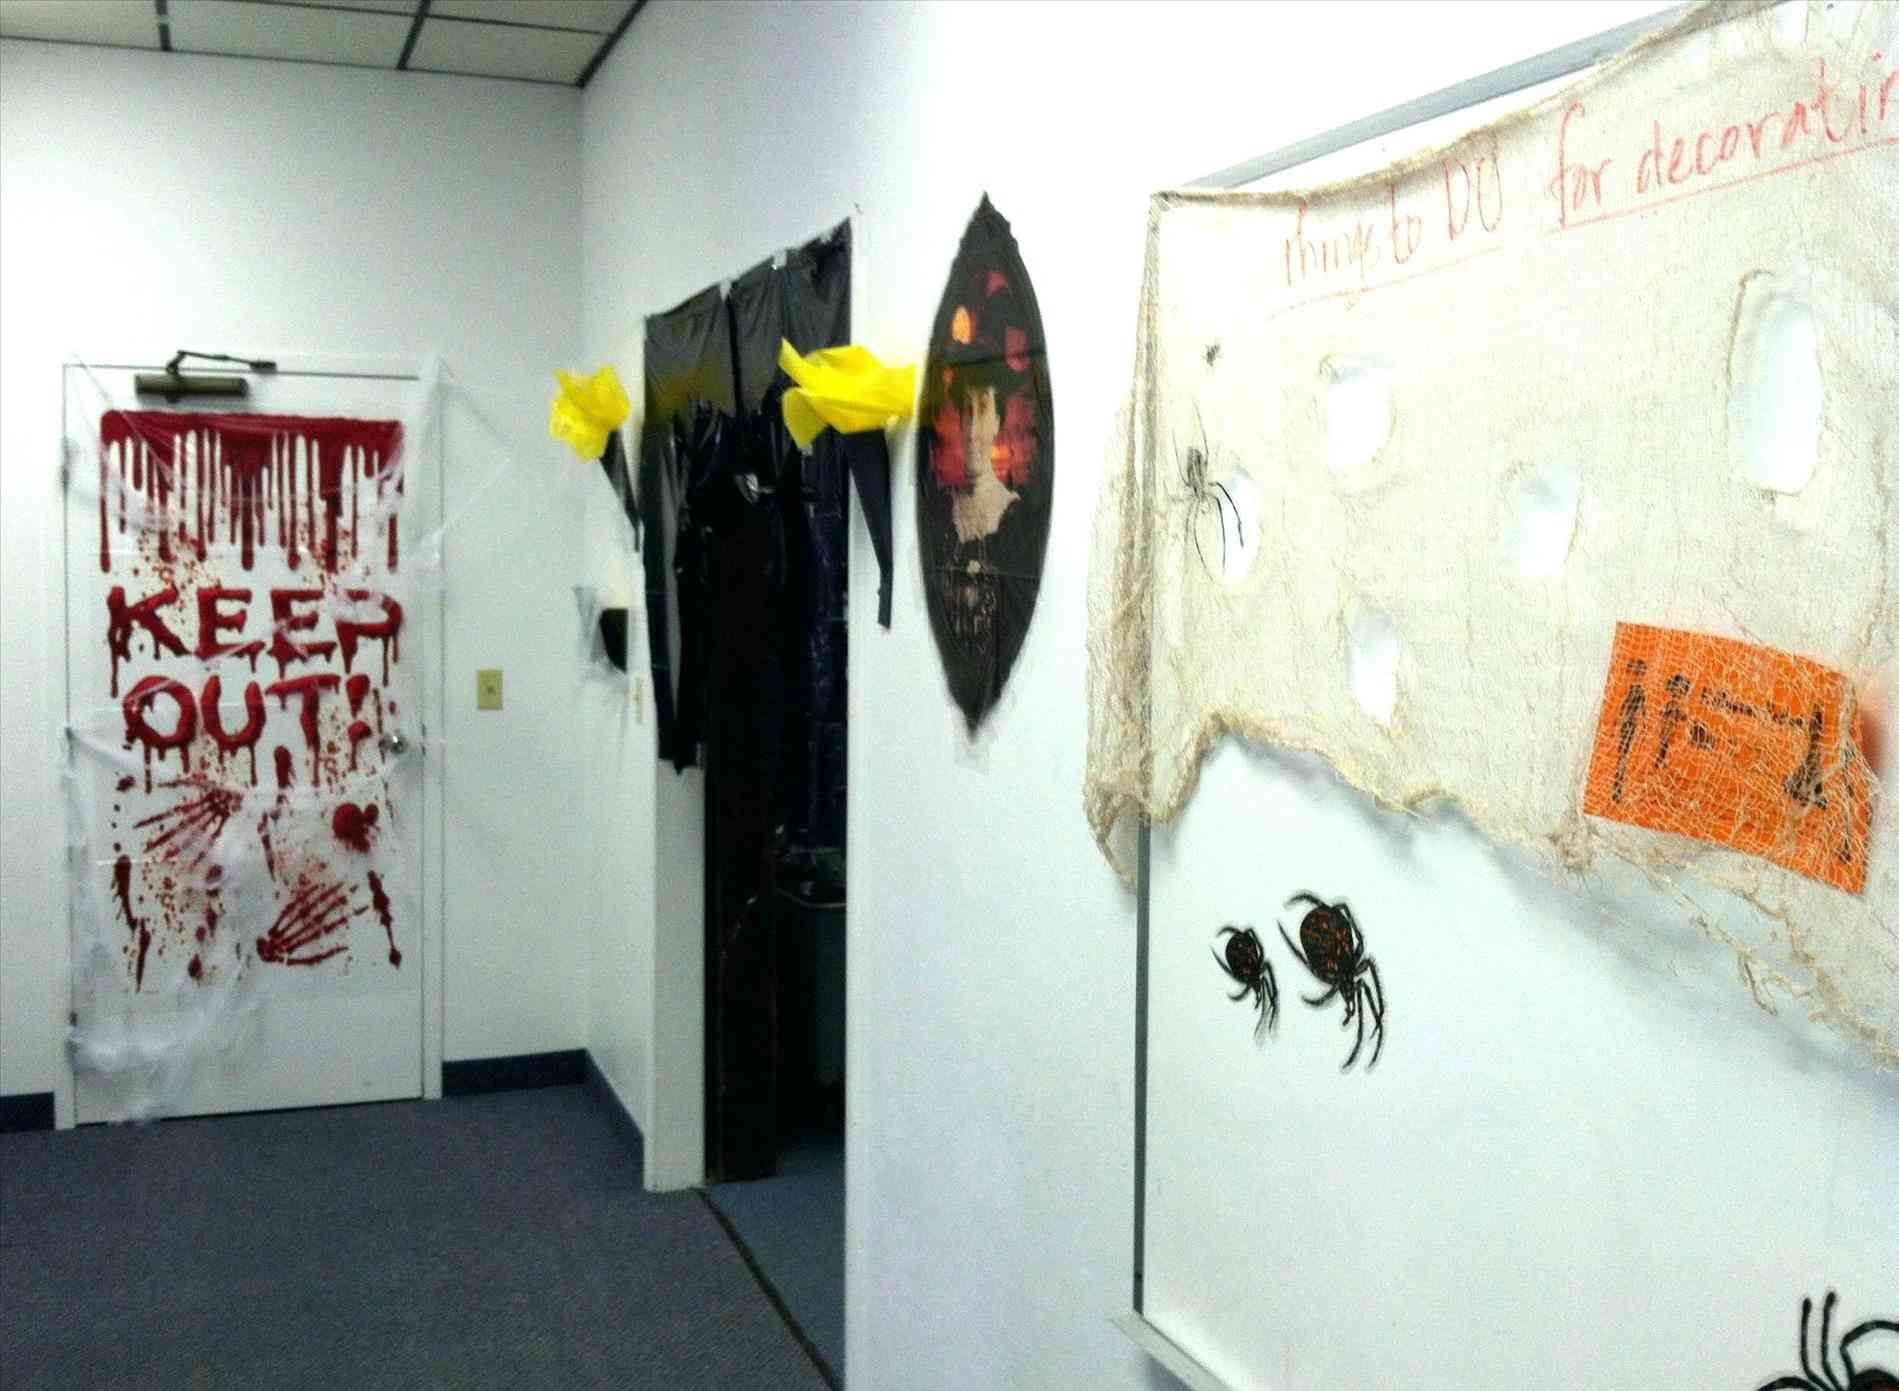 New Post halloween decoration ideas for office visit Bobayule - Halloween Office Decorations Ideas